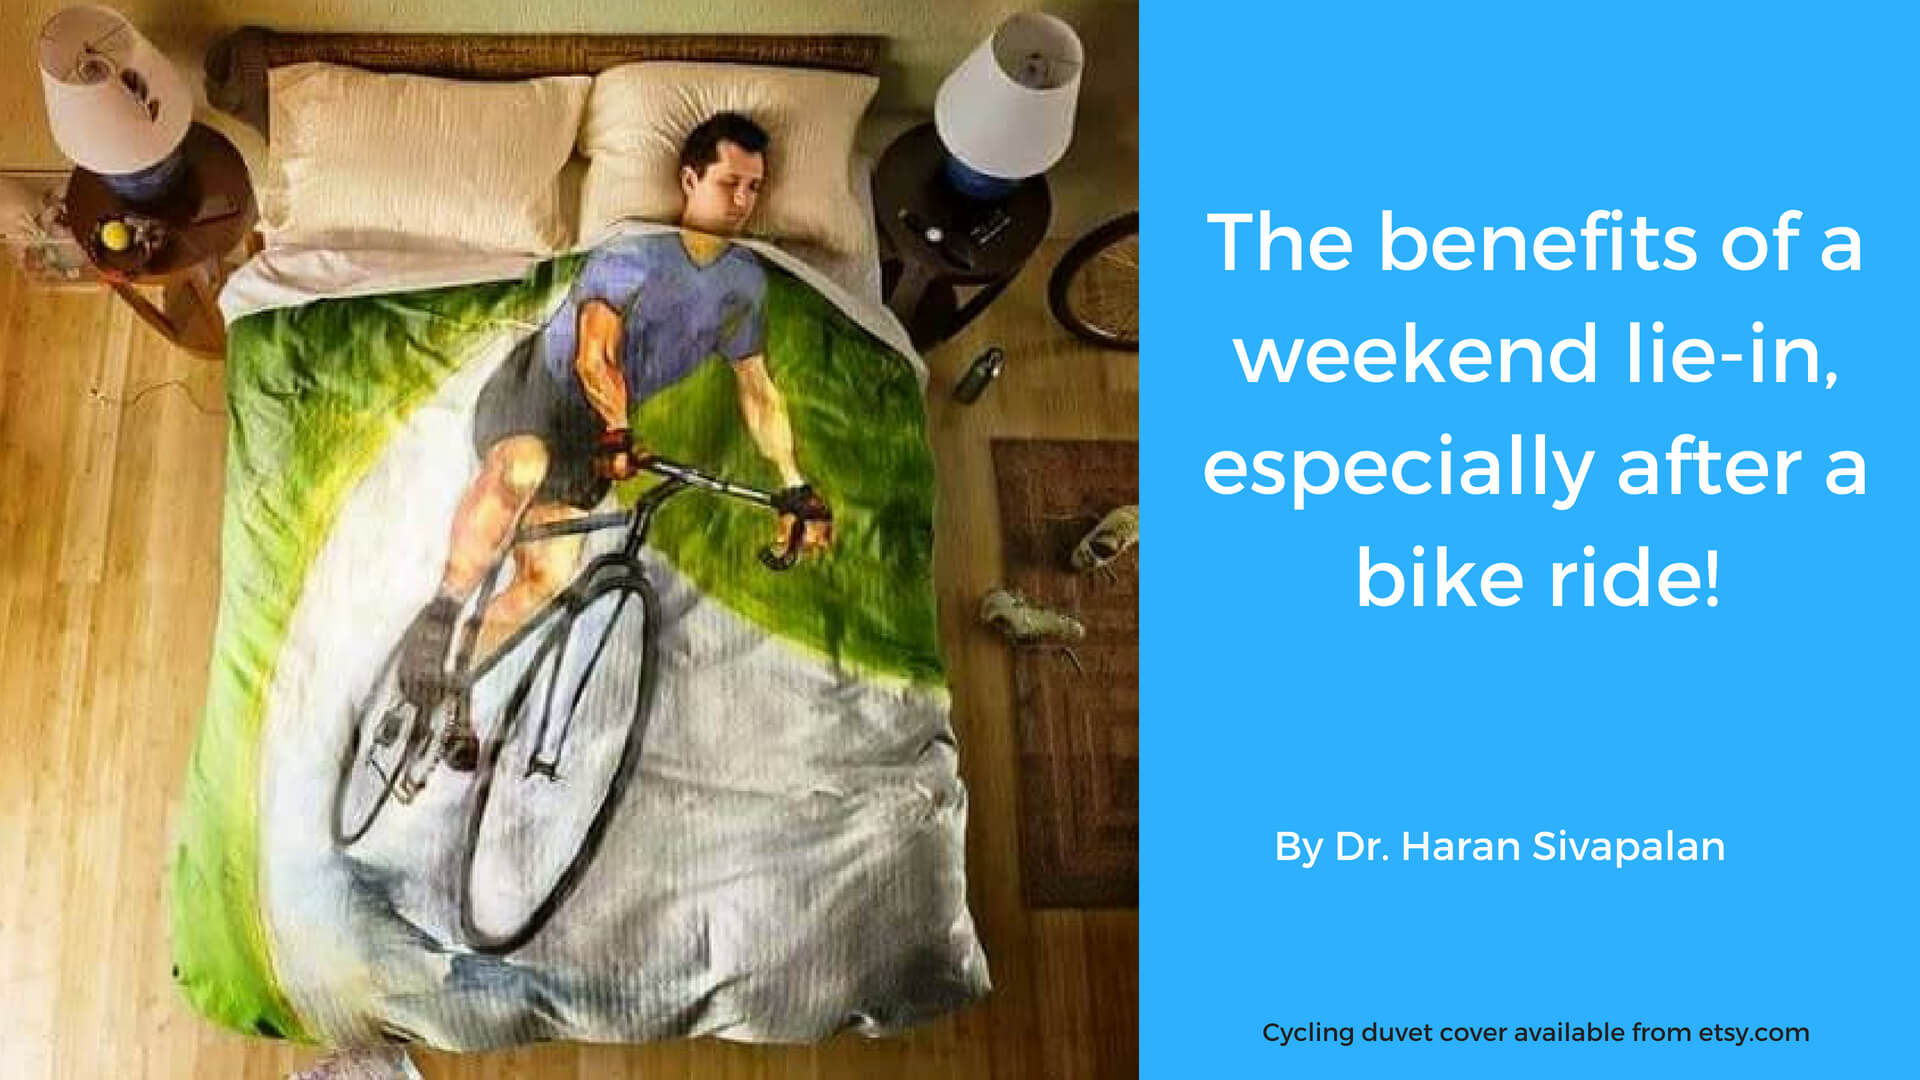 The benefits of a weekend lie-in